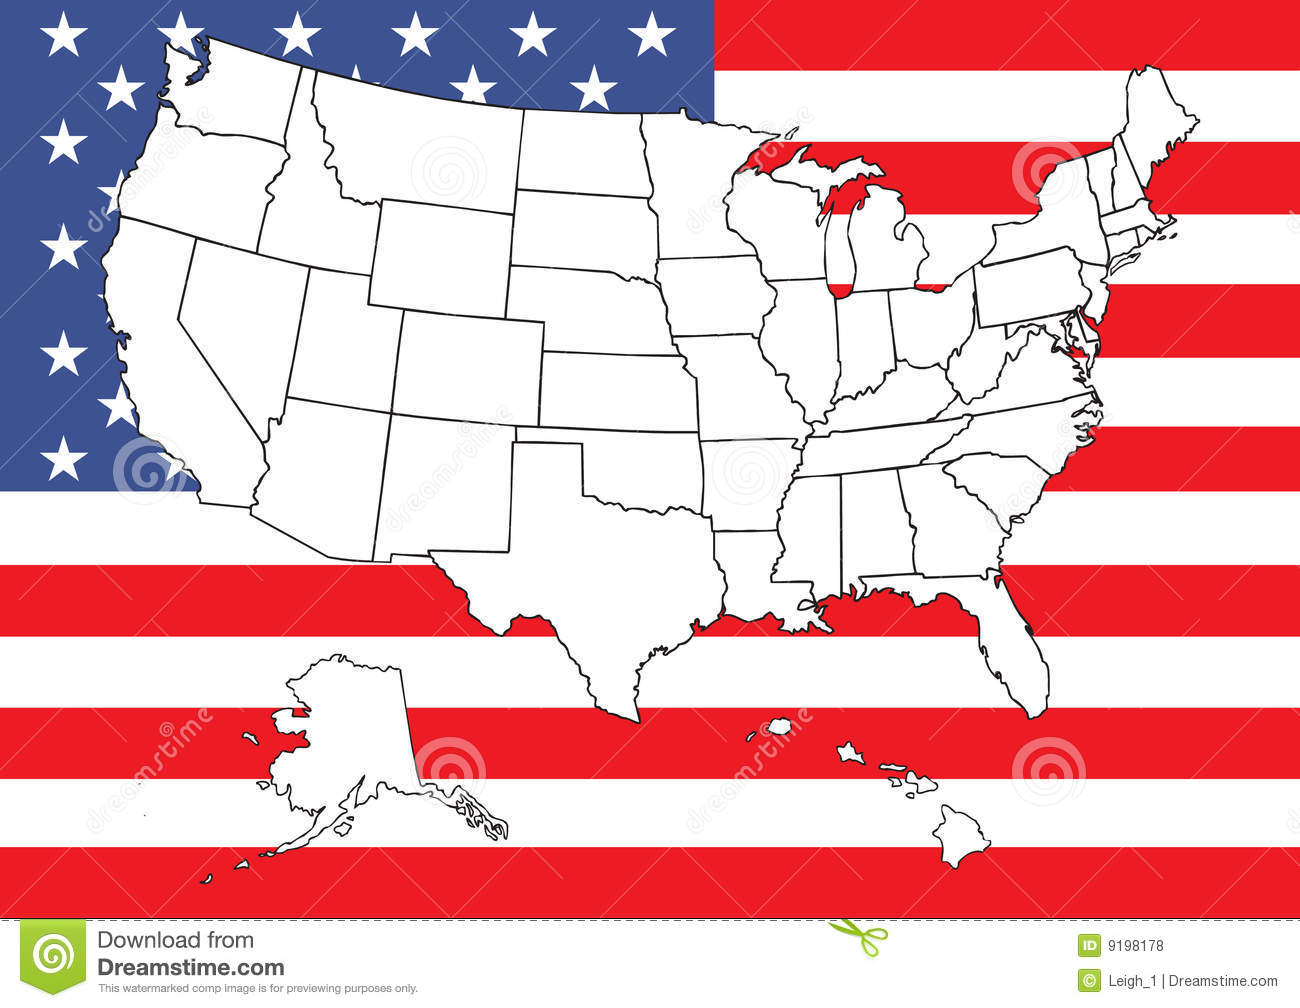 Free us map flag clipart image transparent library Map Of US With Flag Royalty Free Stock Photos - Image: 9198178 image transparent library